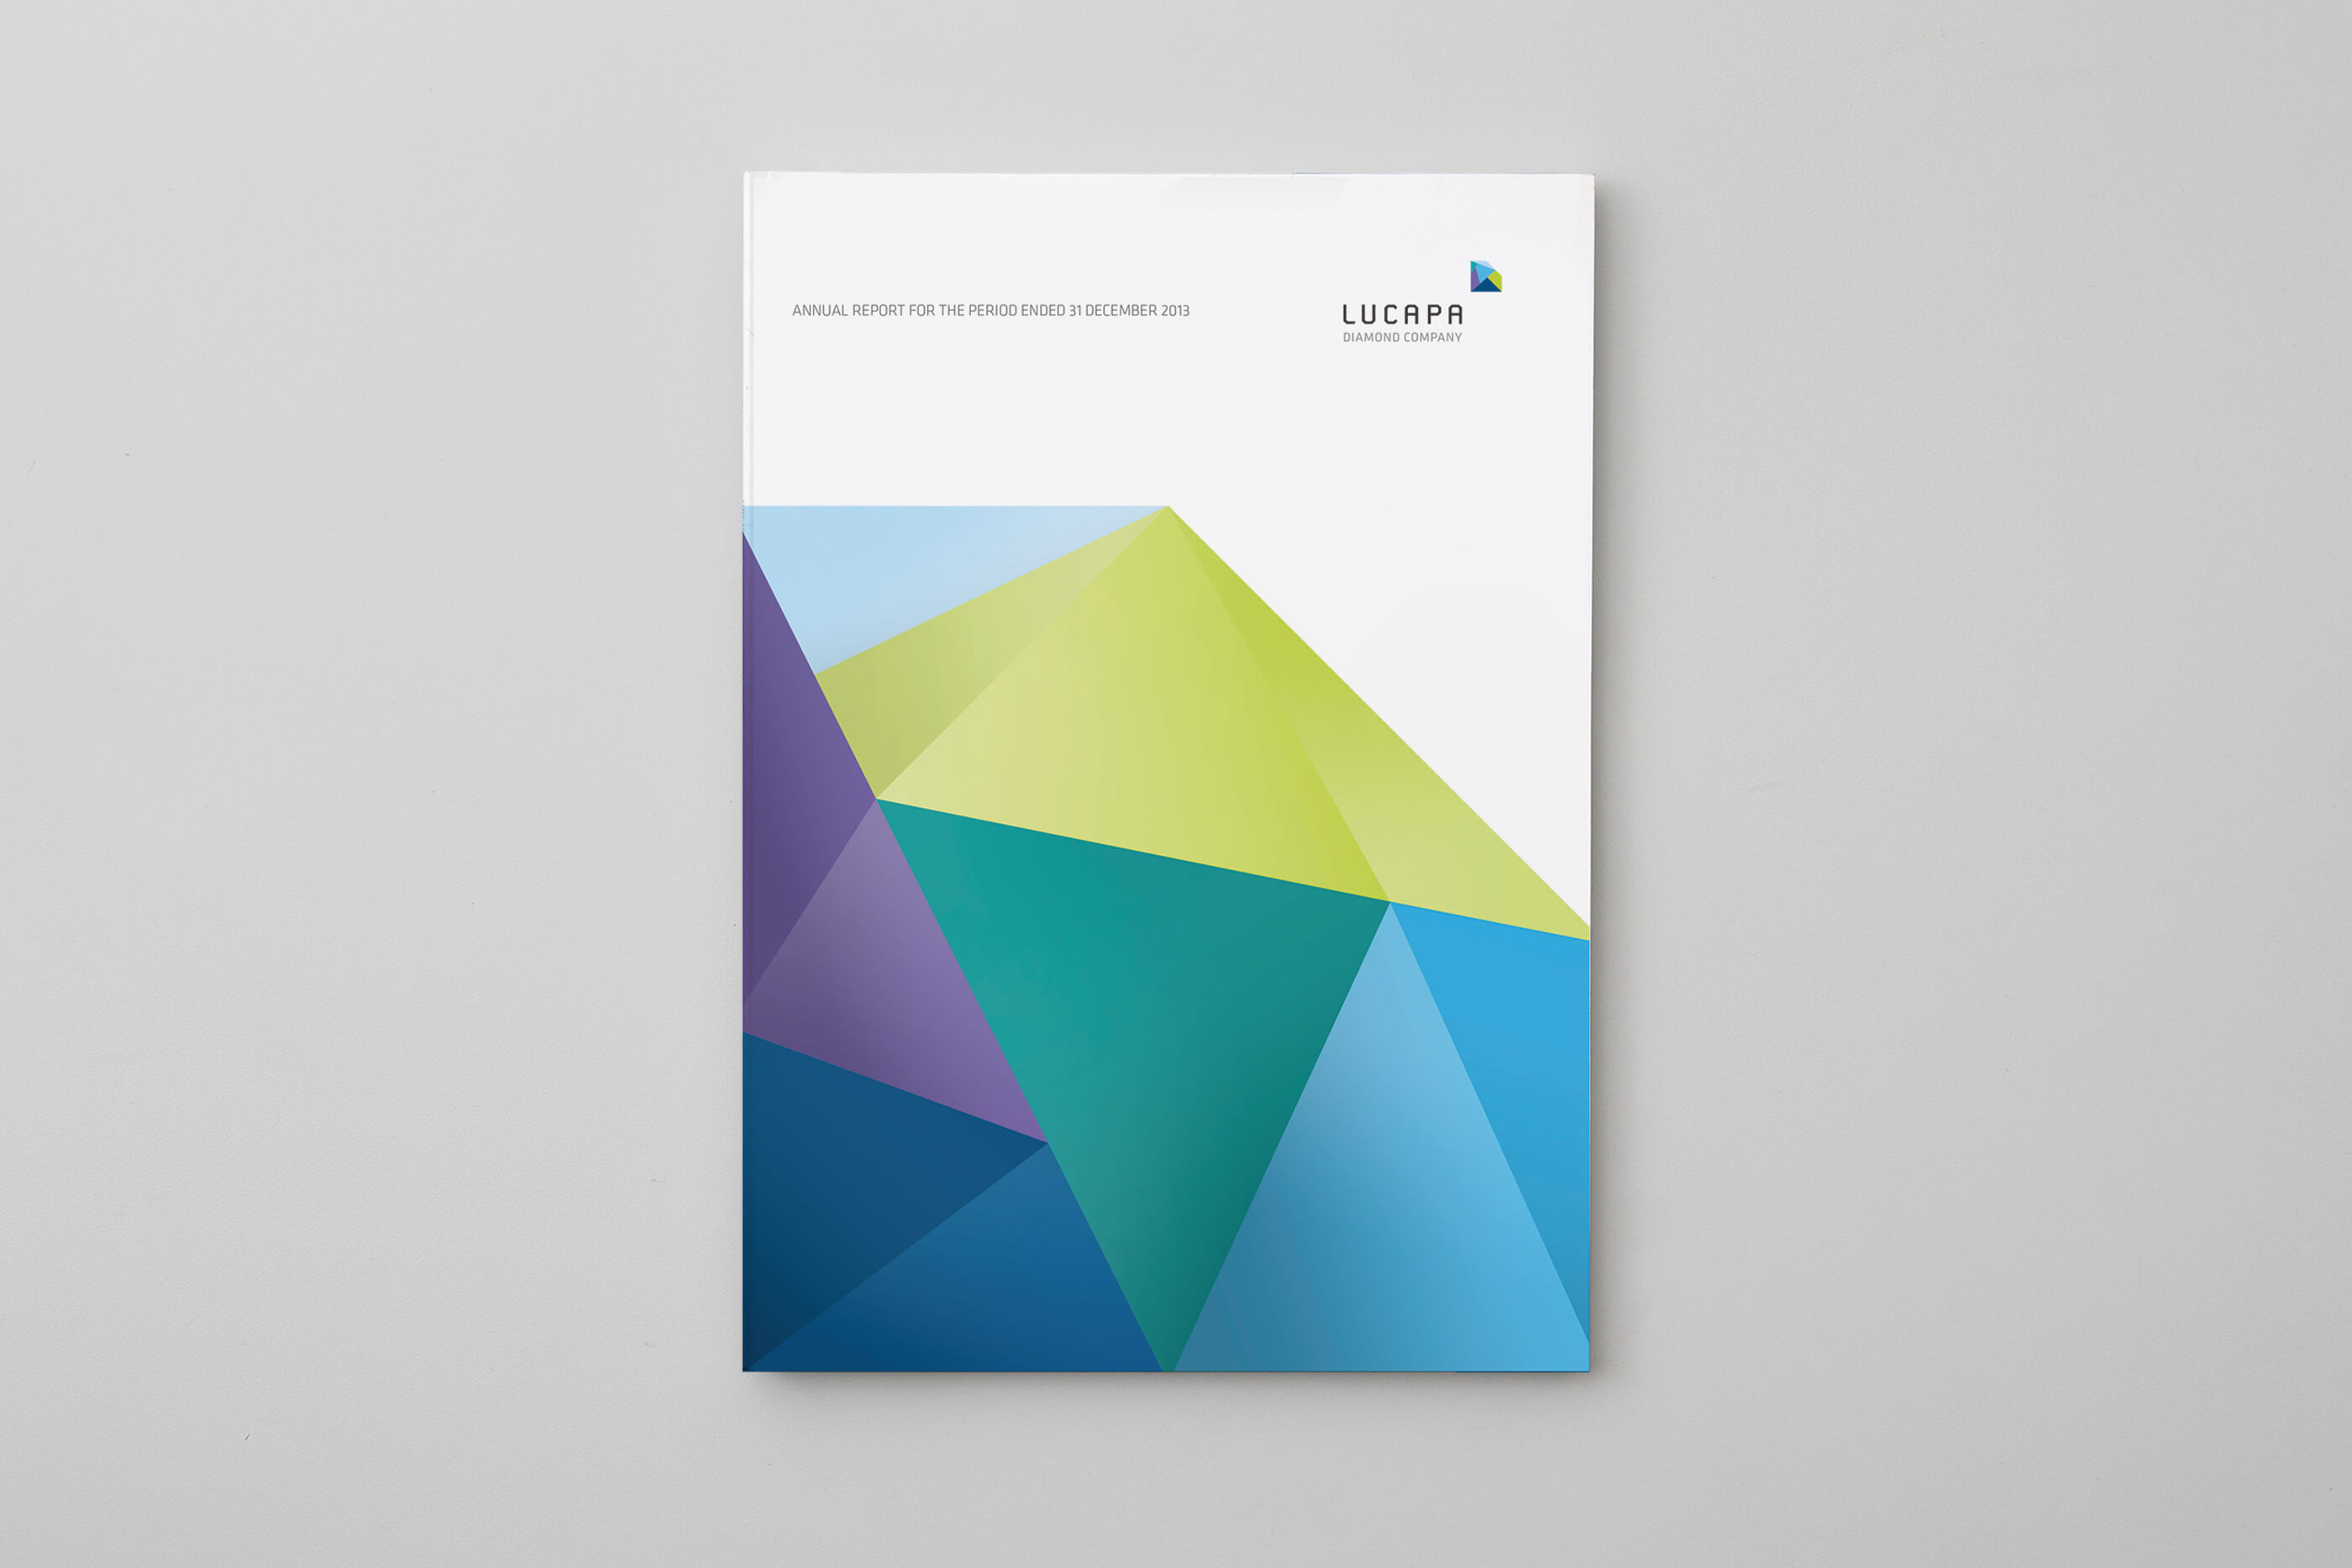 lucapa_annual_report_2013